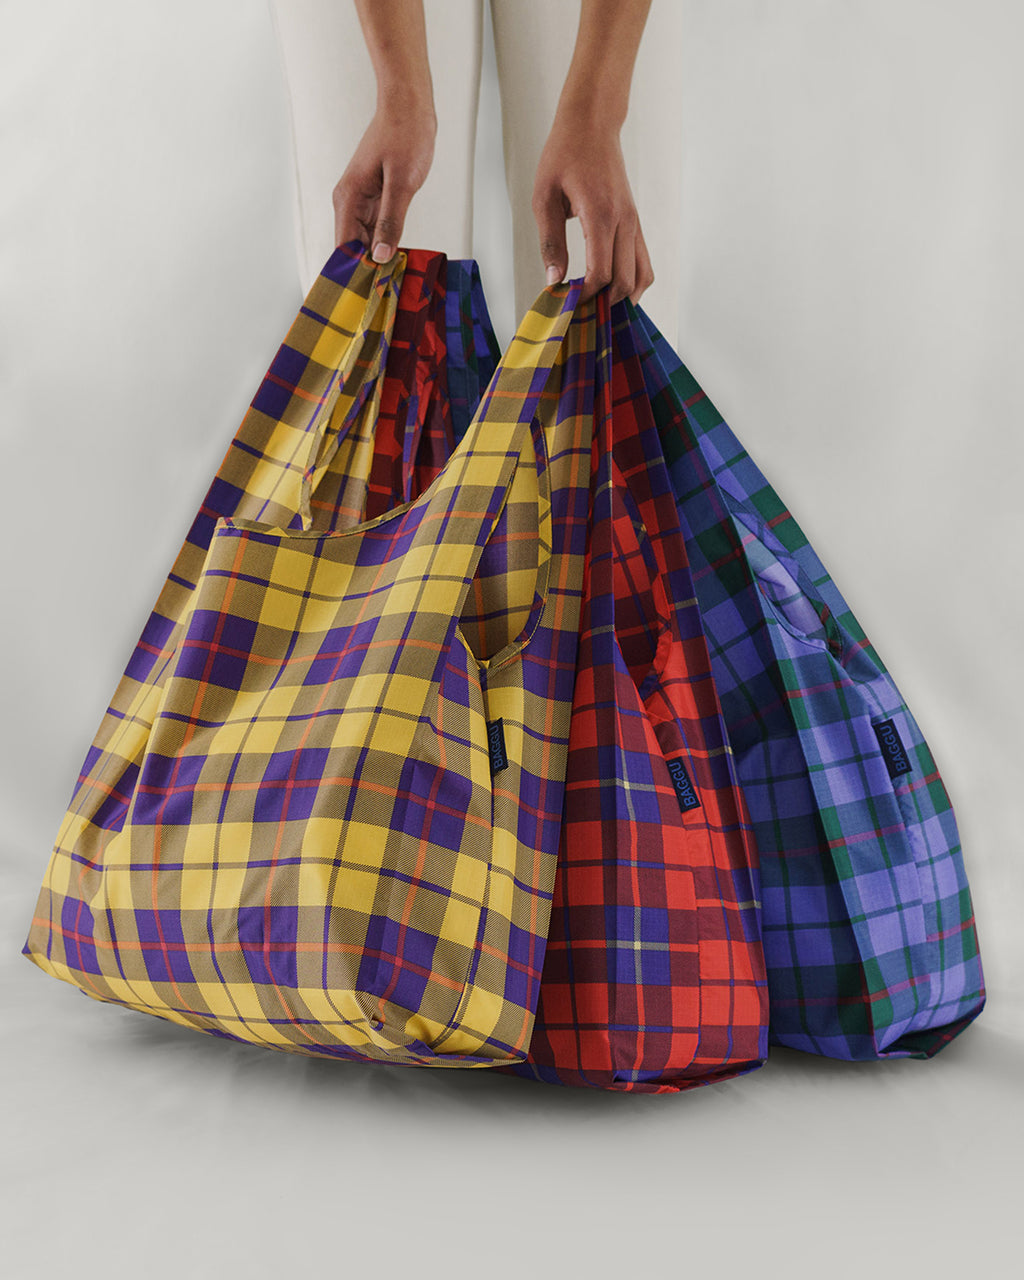 Set of 3 standard baggus in plaid prints.